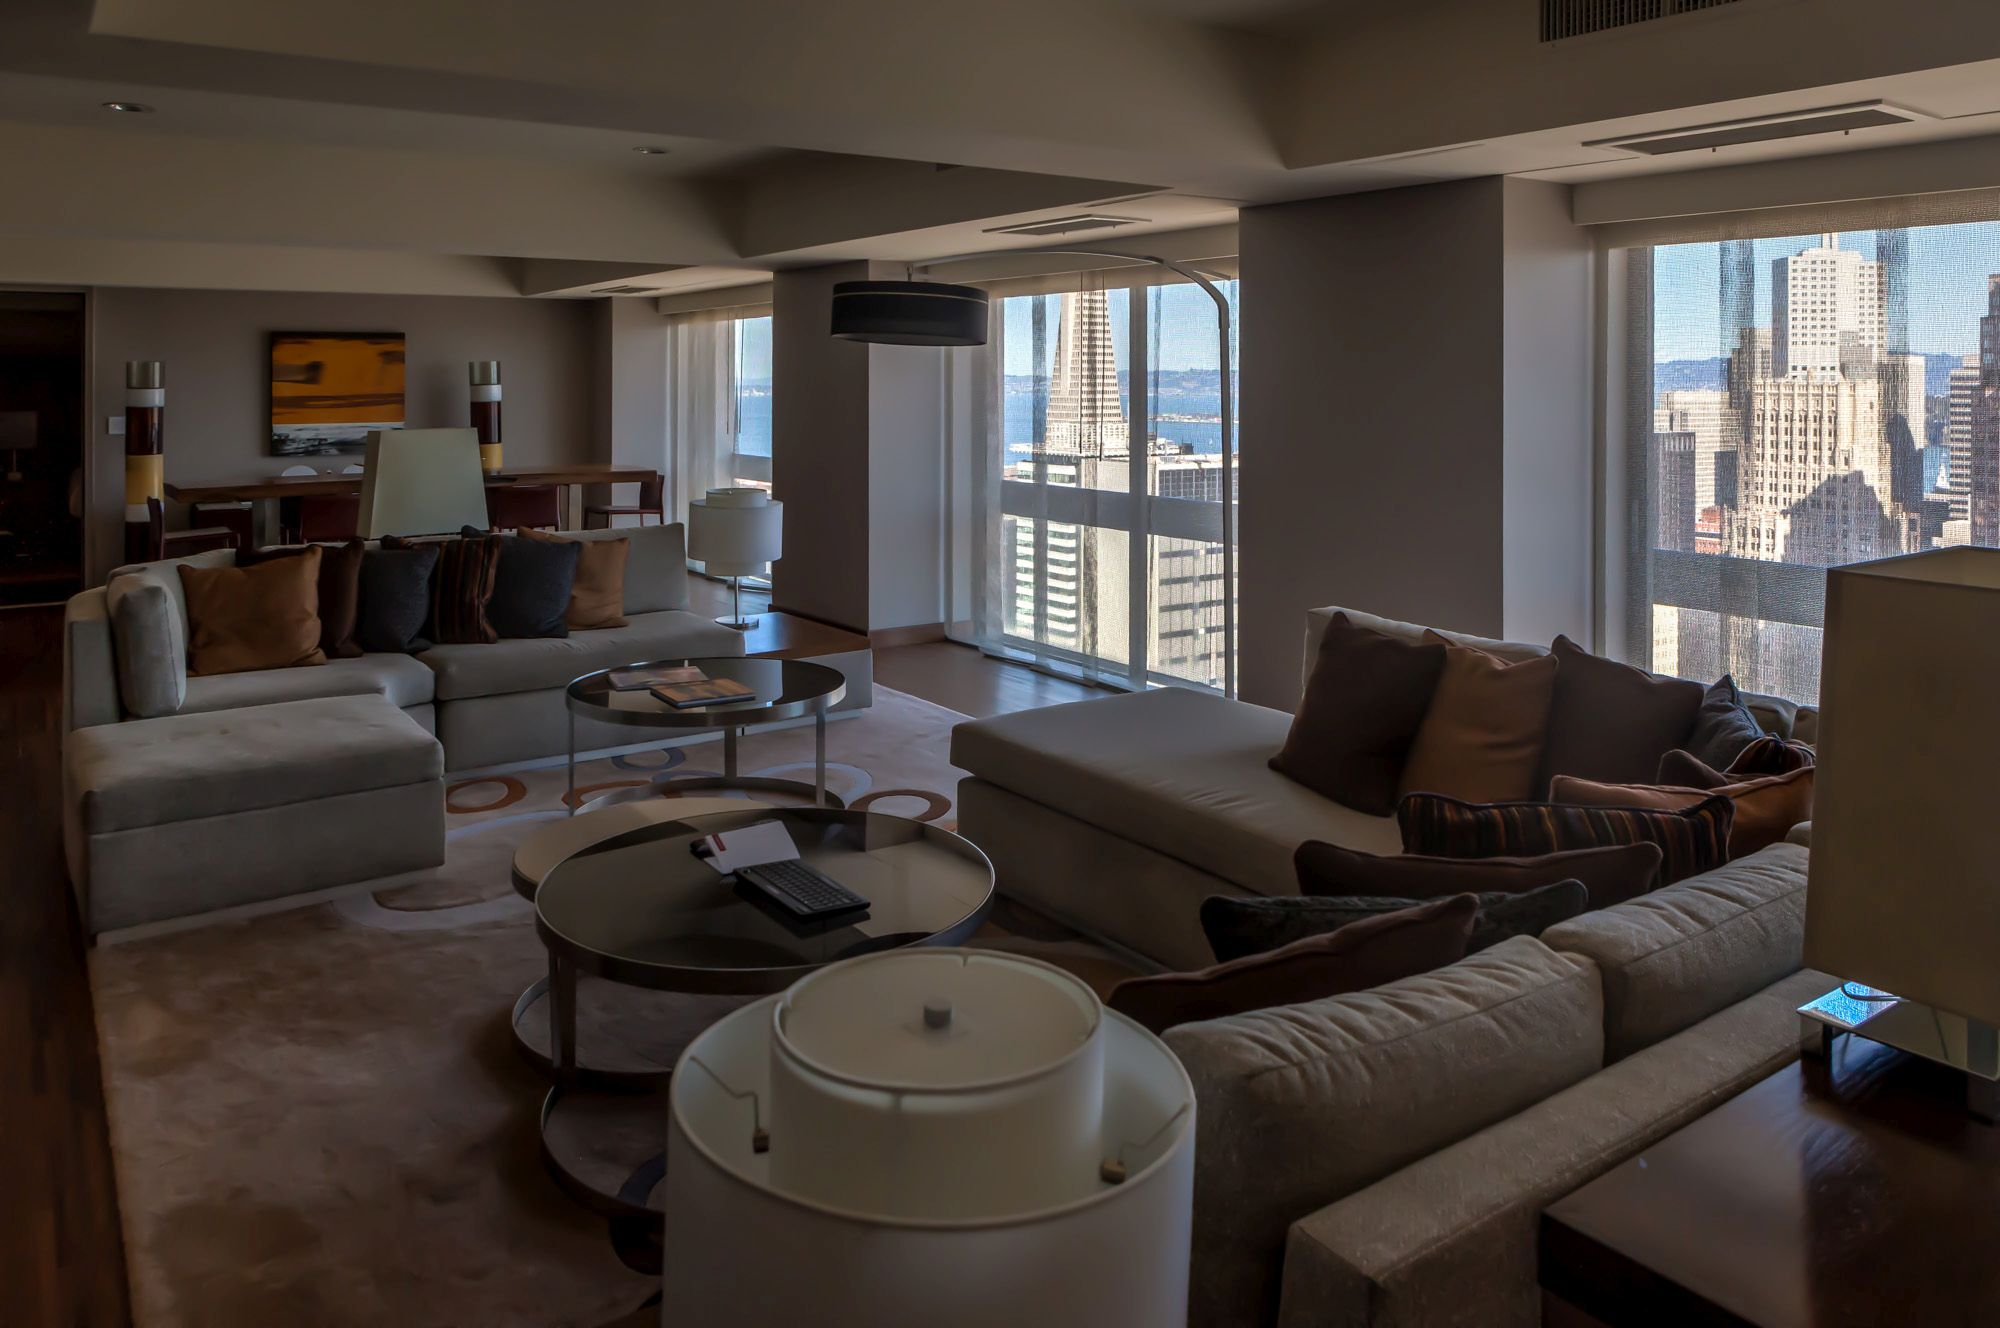 Hotel Review: Grand Hyatt San Francisco and Hospitality Suite